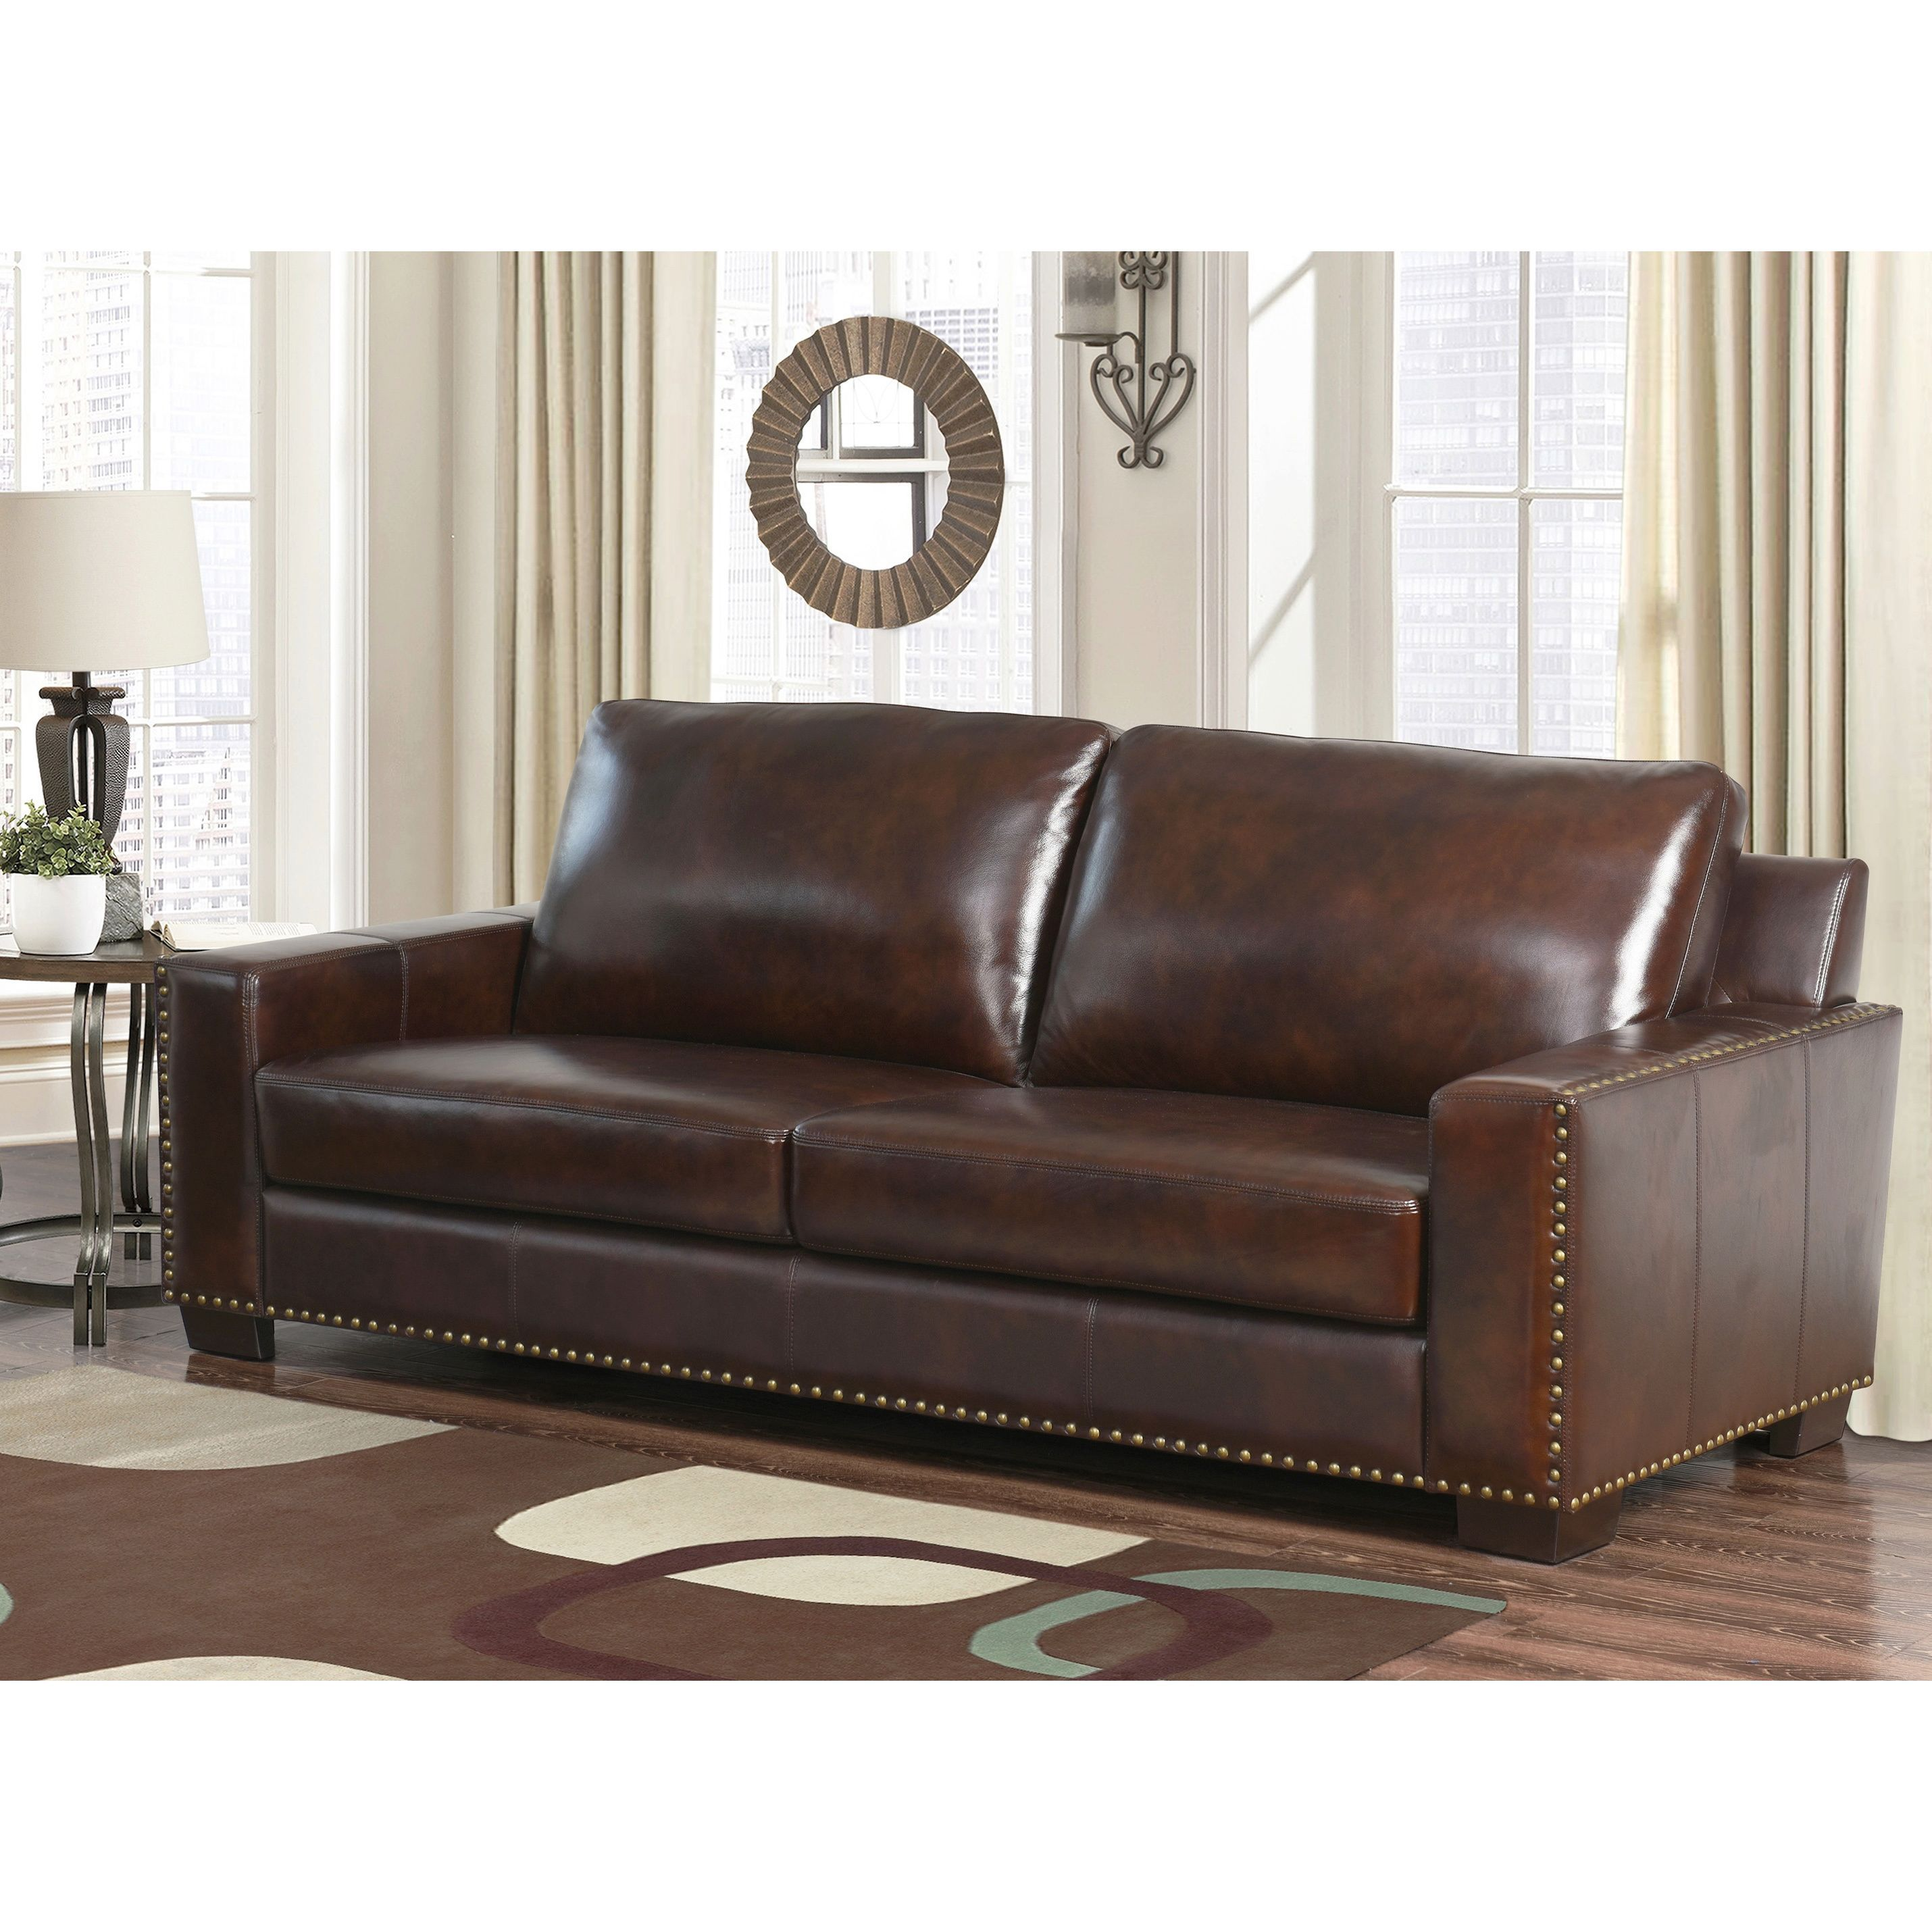 Miraculous Buy Leather Sofa From Overstock Com For Everyday Discount Onthecornerstone Fun Painted Chair Ideas Images Onthecornerstoneorg